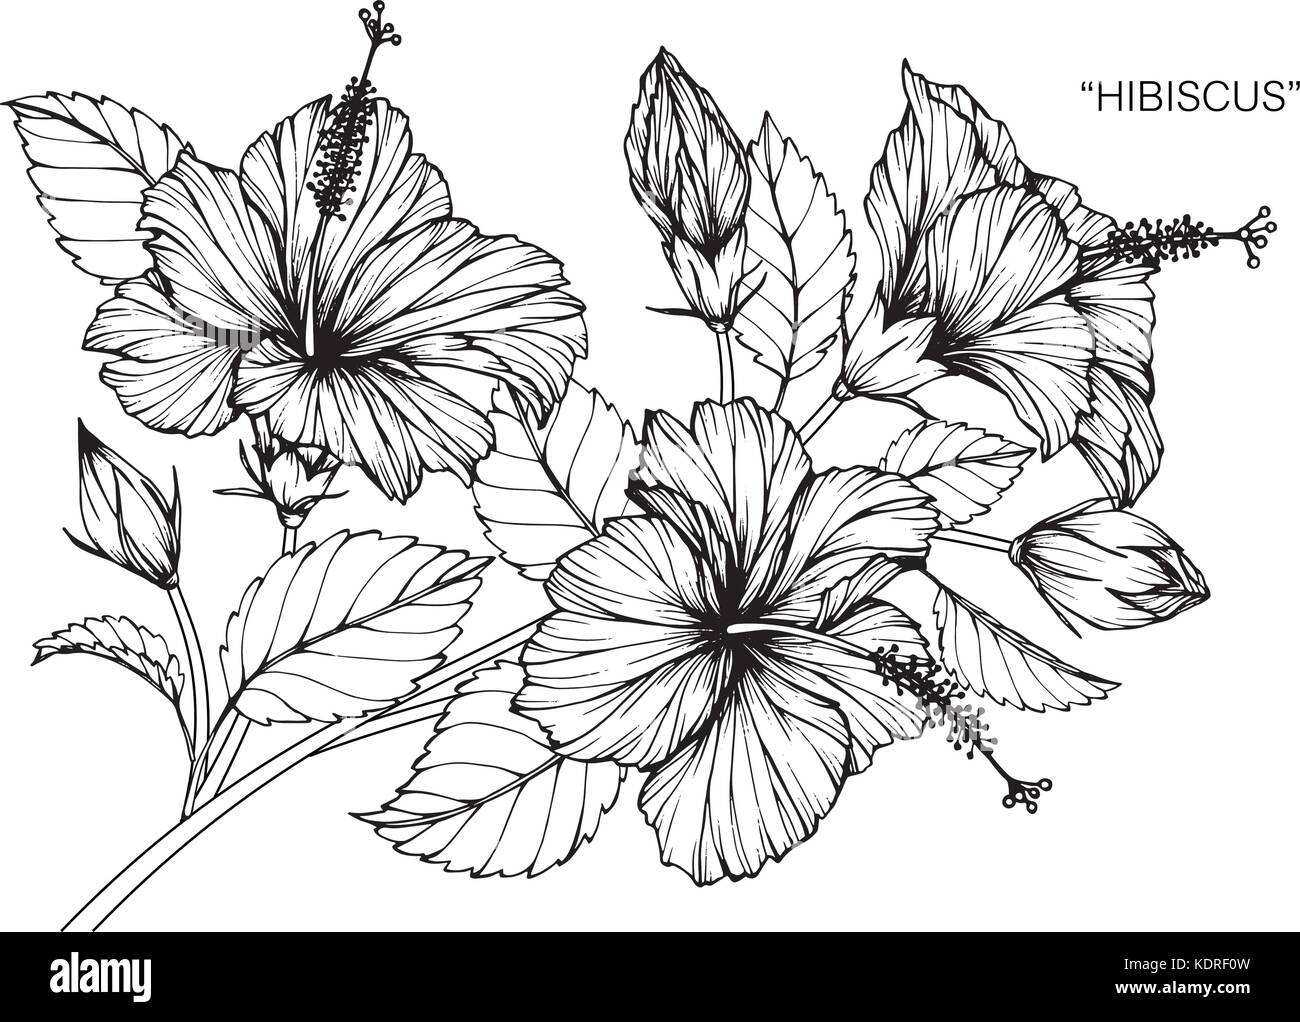 Hibiscus Flower Drawing Illustration Black And White With Line Art